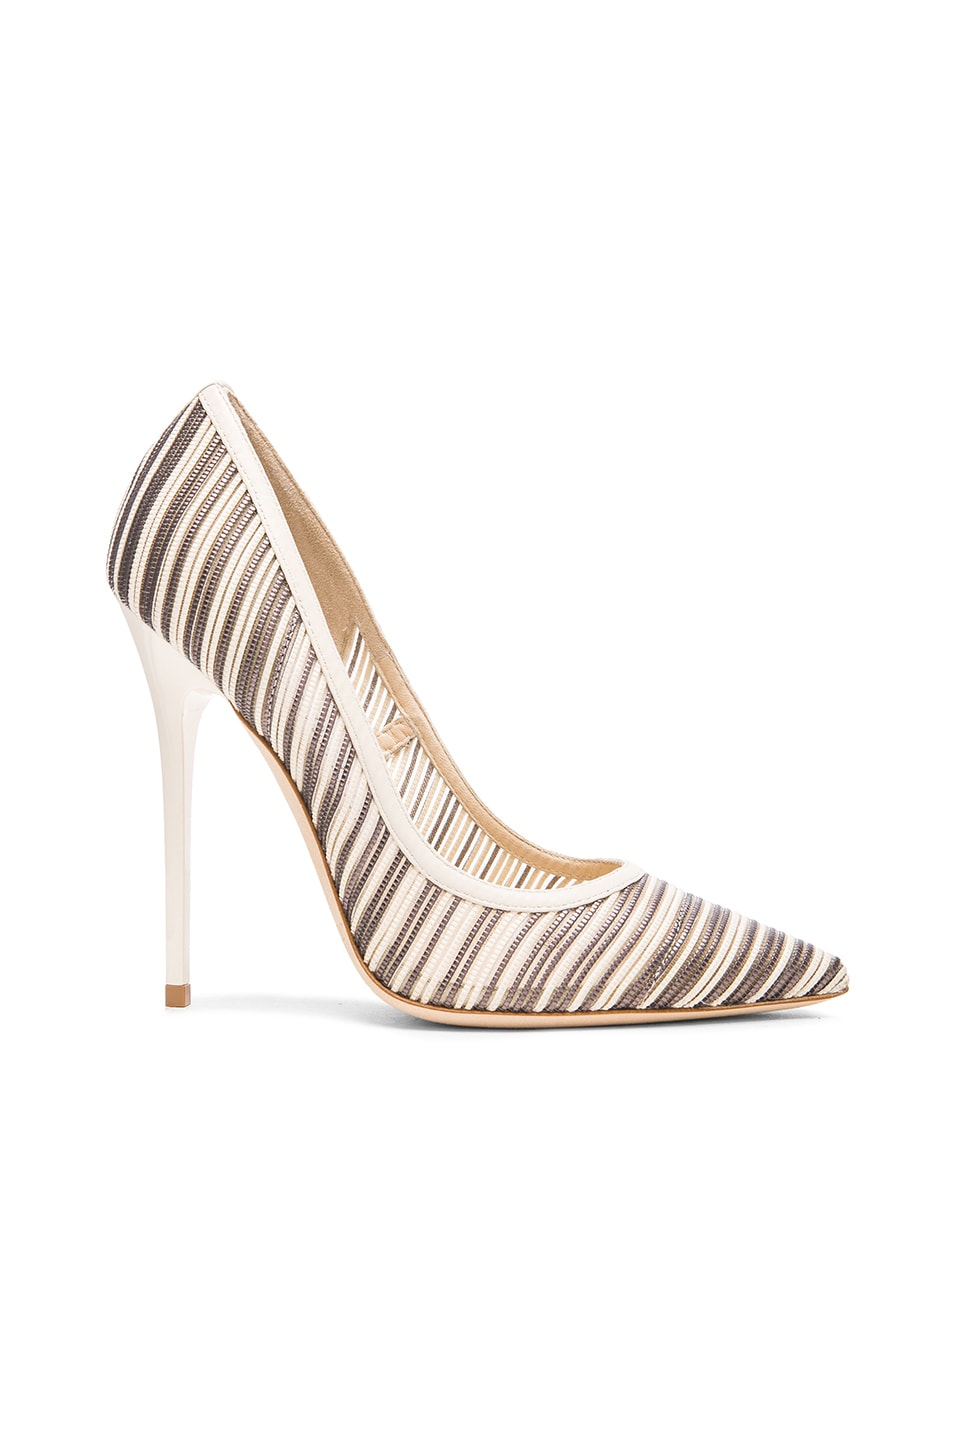 Image 1 of Jimmy Choo Metallic Anouk Mesh Pumps in Off White Mix